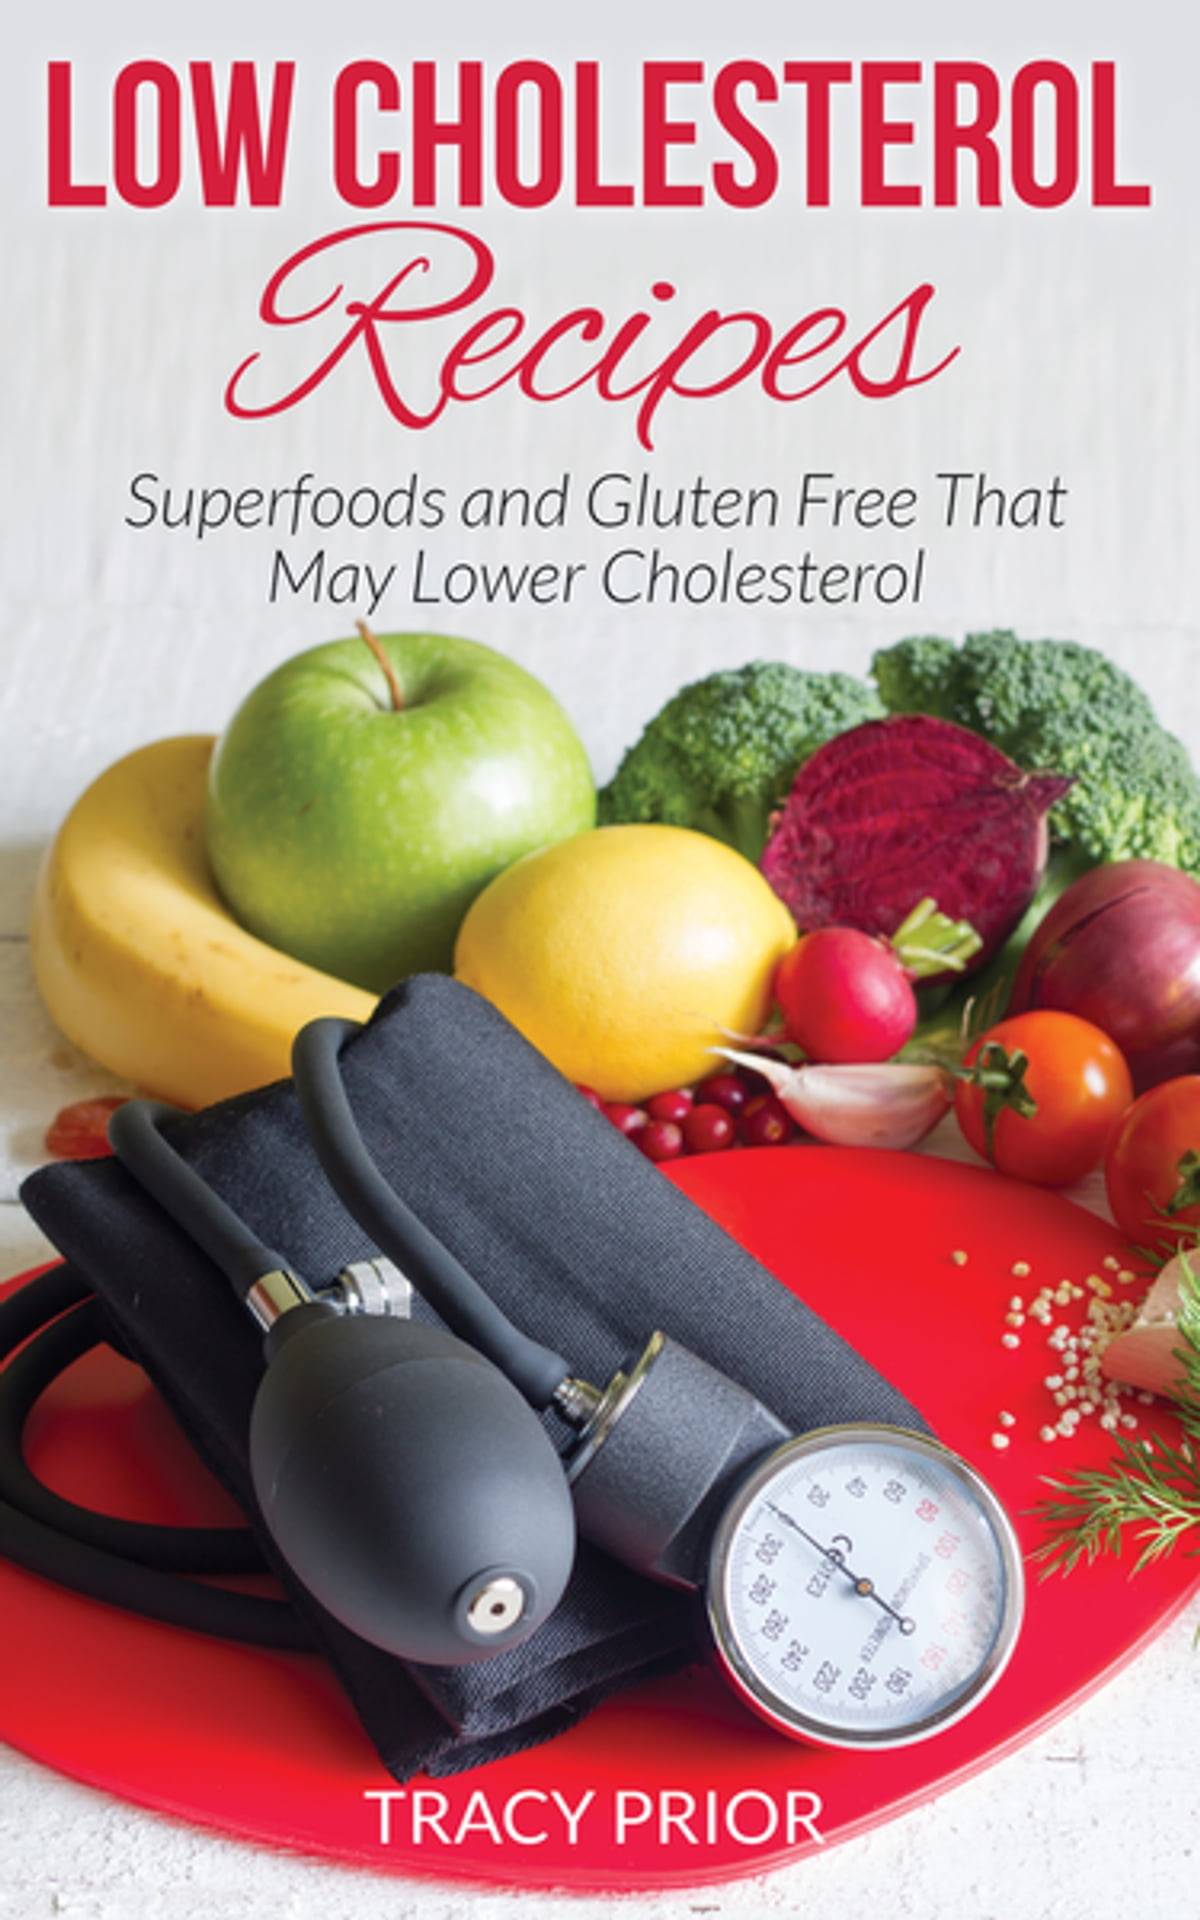 Low Cholesterol Recipes: Superfoods and Gluten Free That May Lower  Cholesterol ebook by Tracy Prior - Rakuten Kobo